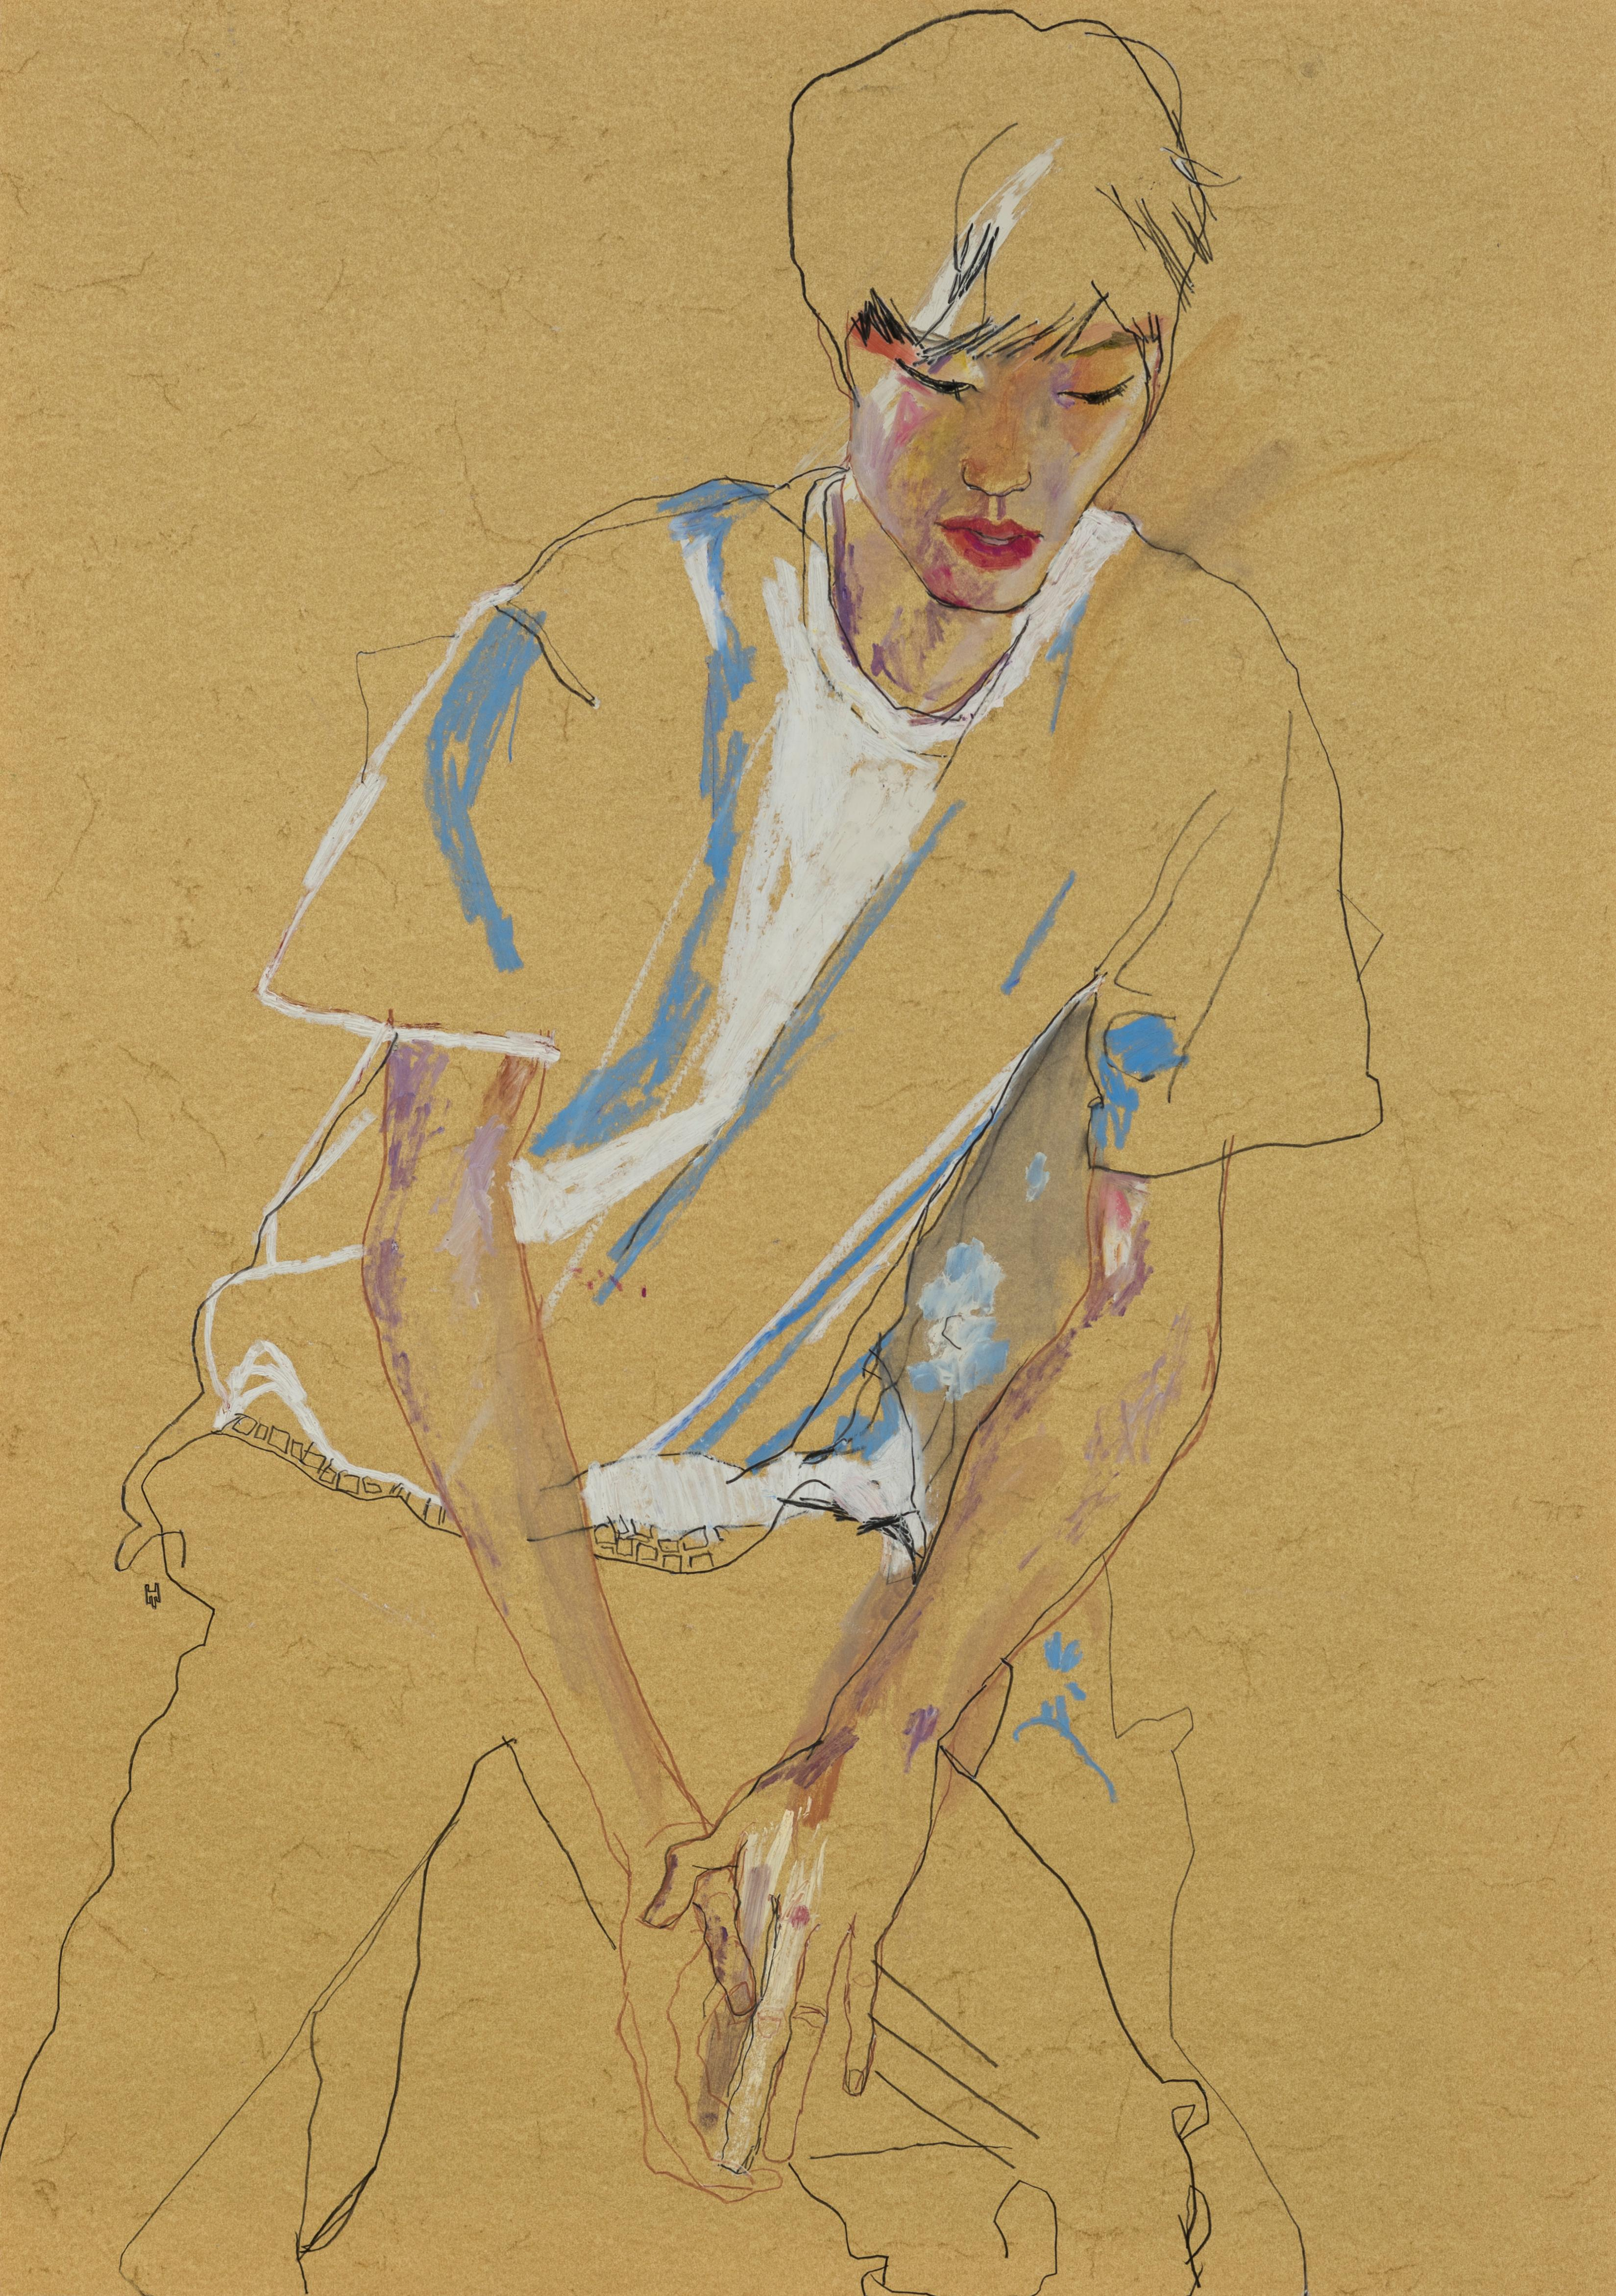 Nobu (Hands on Legs - Blue & White), Mixed media on ochre parchment